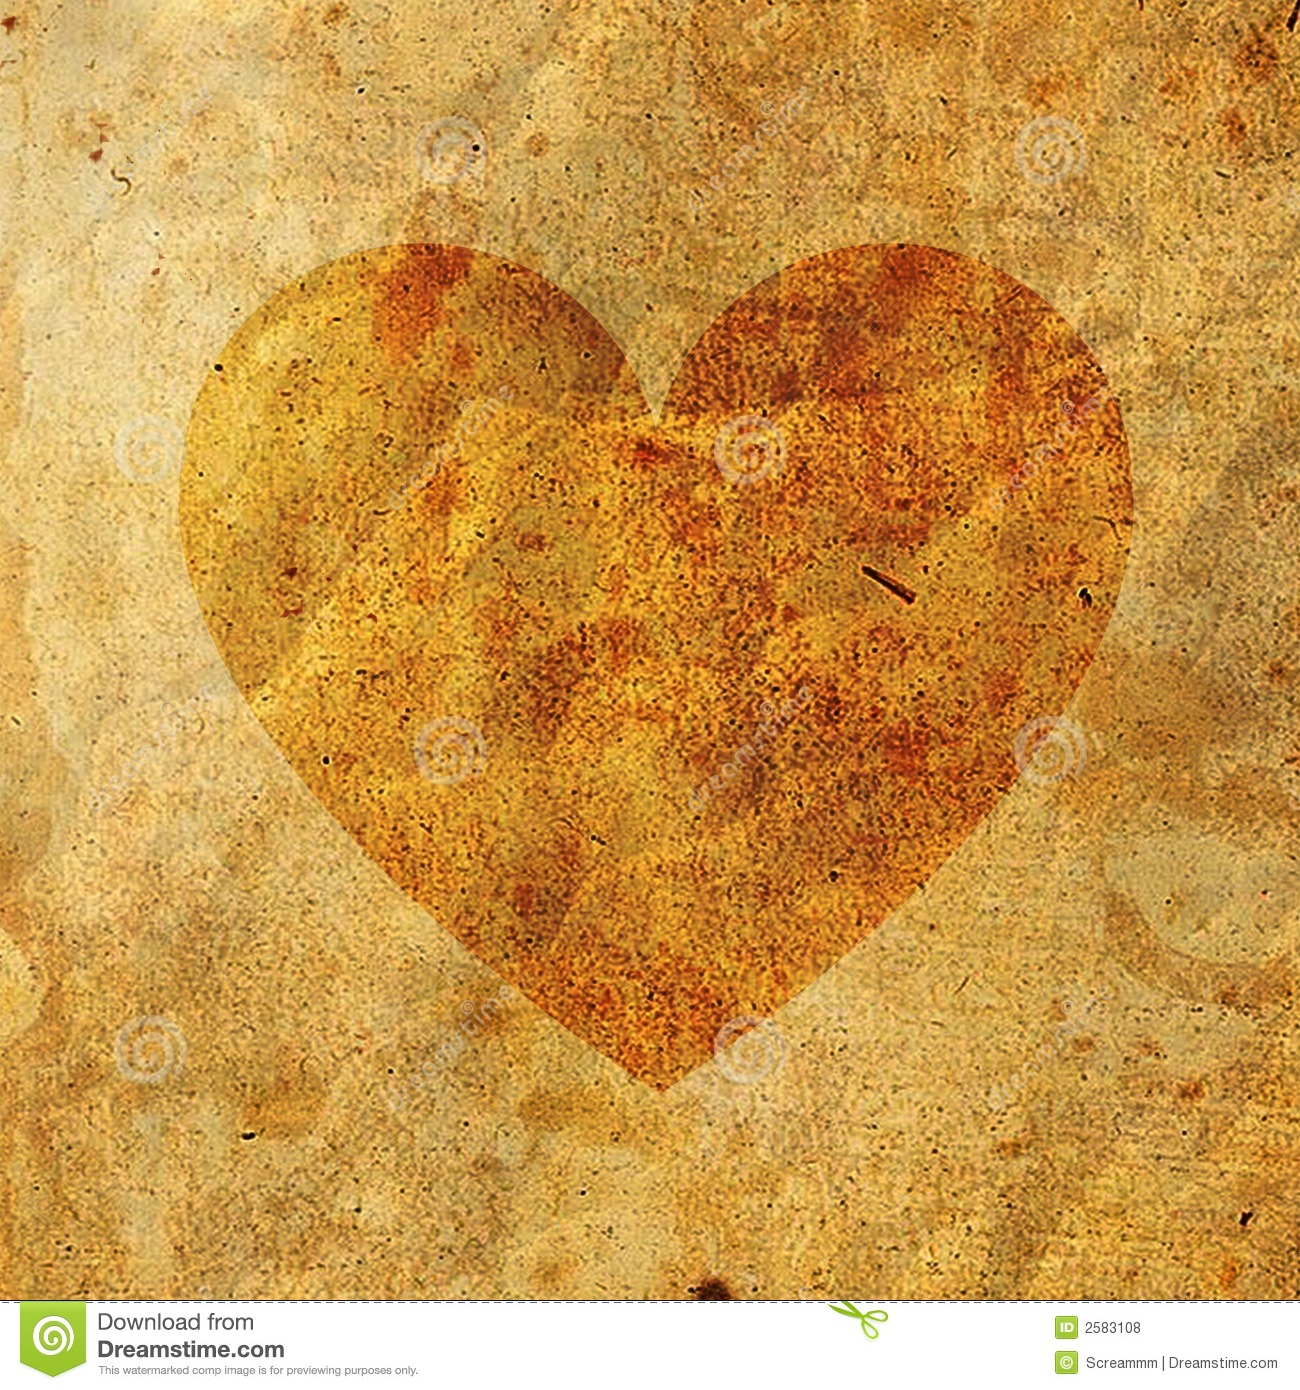 No Credit Check Credit Cards >> Old Paper On Heart Royalty Free Stock Photos - Image: 2583108